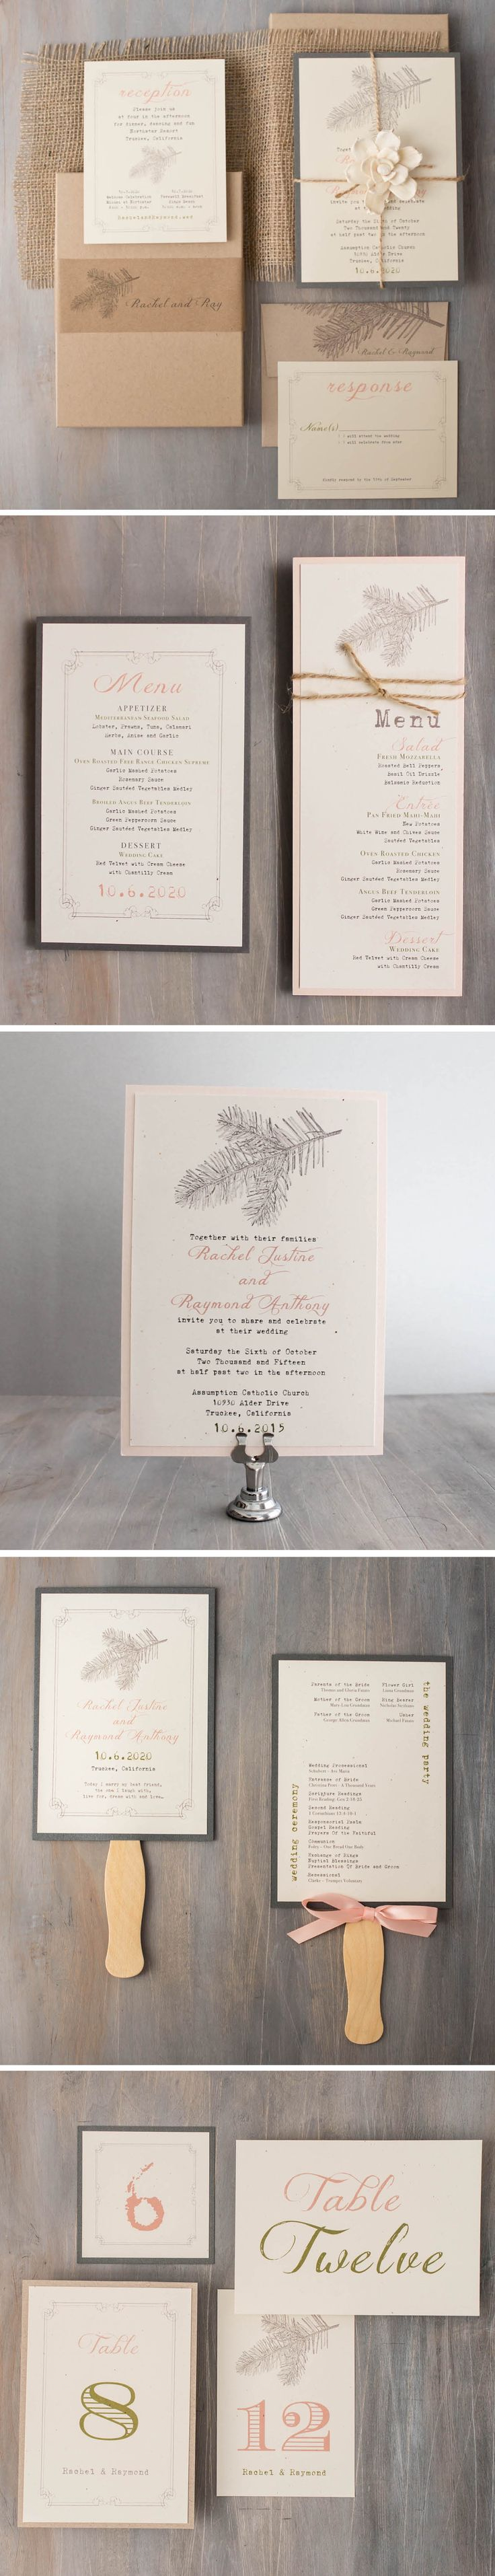 Rustic inspired blush, taupe & moss green wedding invitations | Customizable | Beacon Lane | Shop the entire collection at beaconln.com